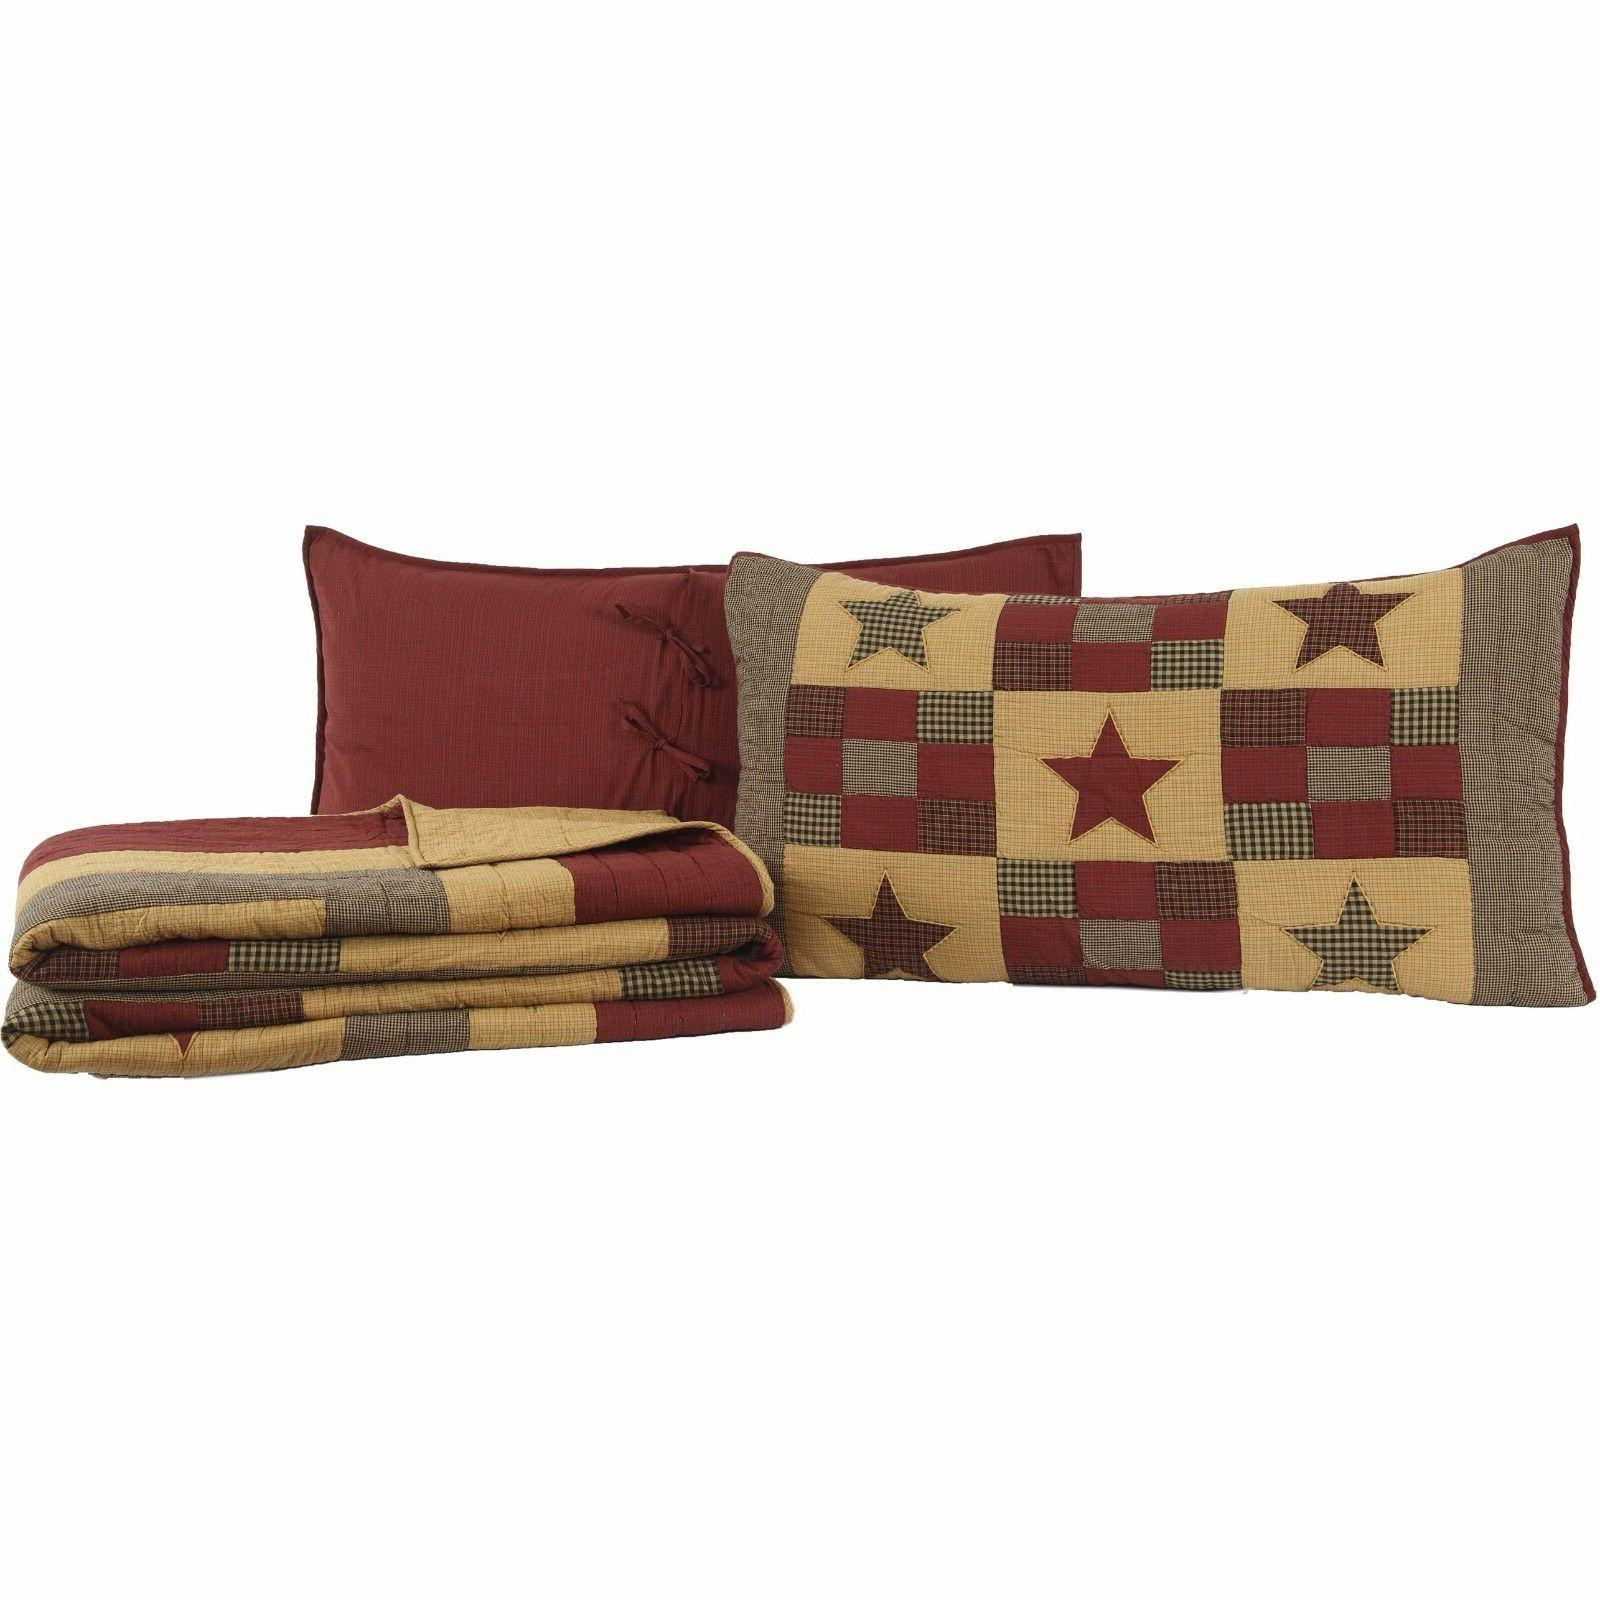 HAZELWOOD 3pc Luxury King Quilt SET Ninepatch Block Star Plaid Check